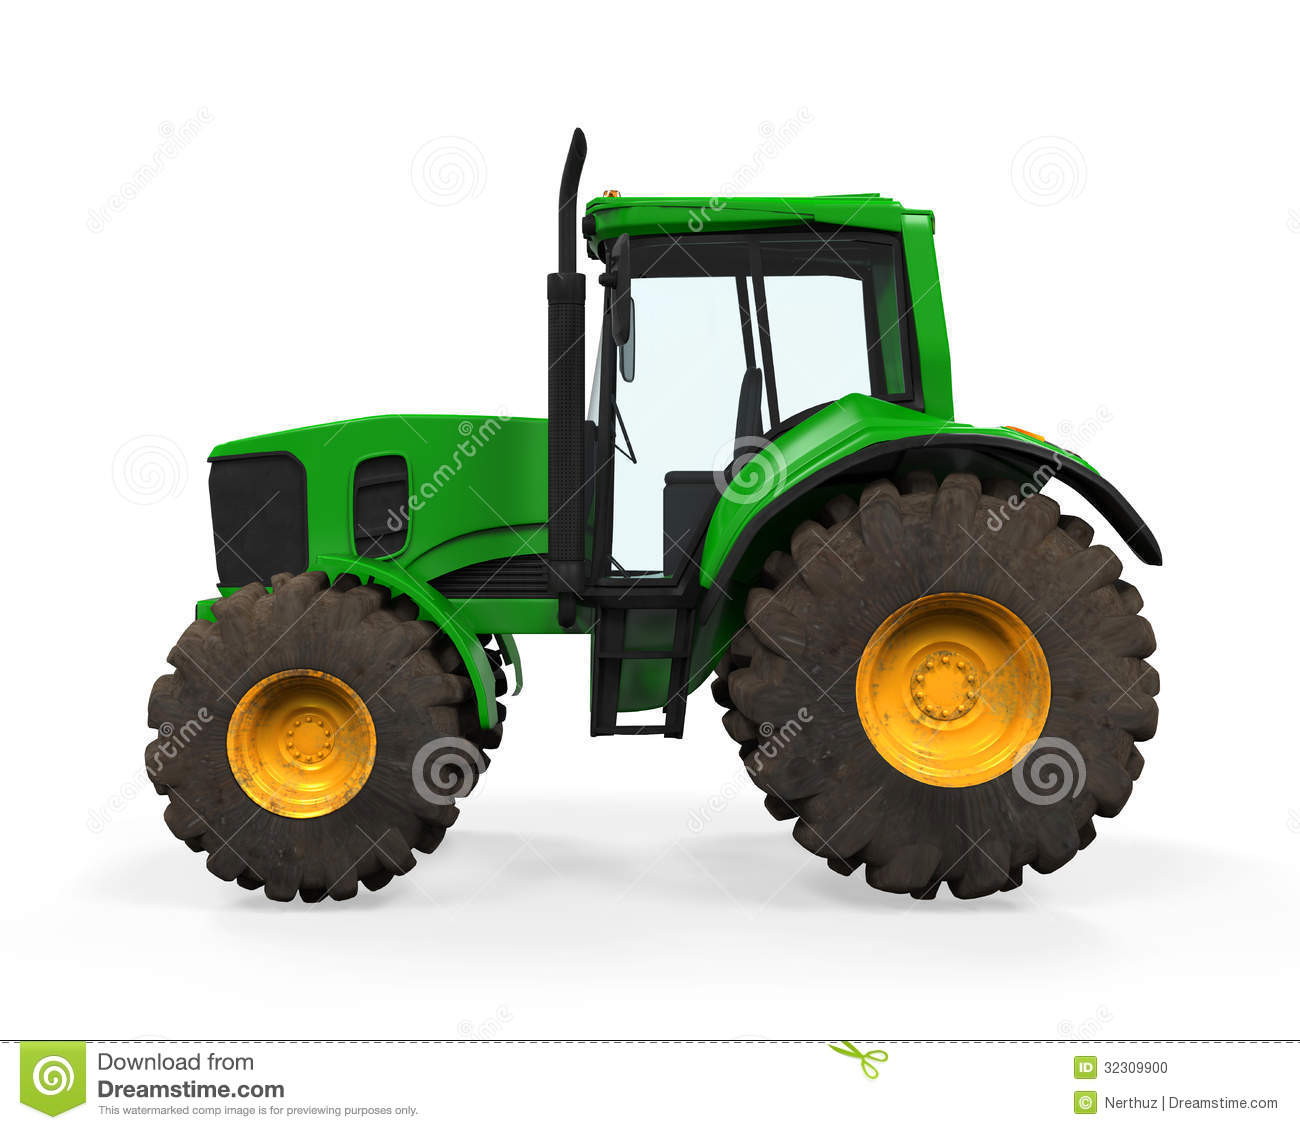 Farm Tractor Wheel Clip Art : Green tractor isolated stock photo image